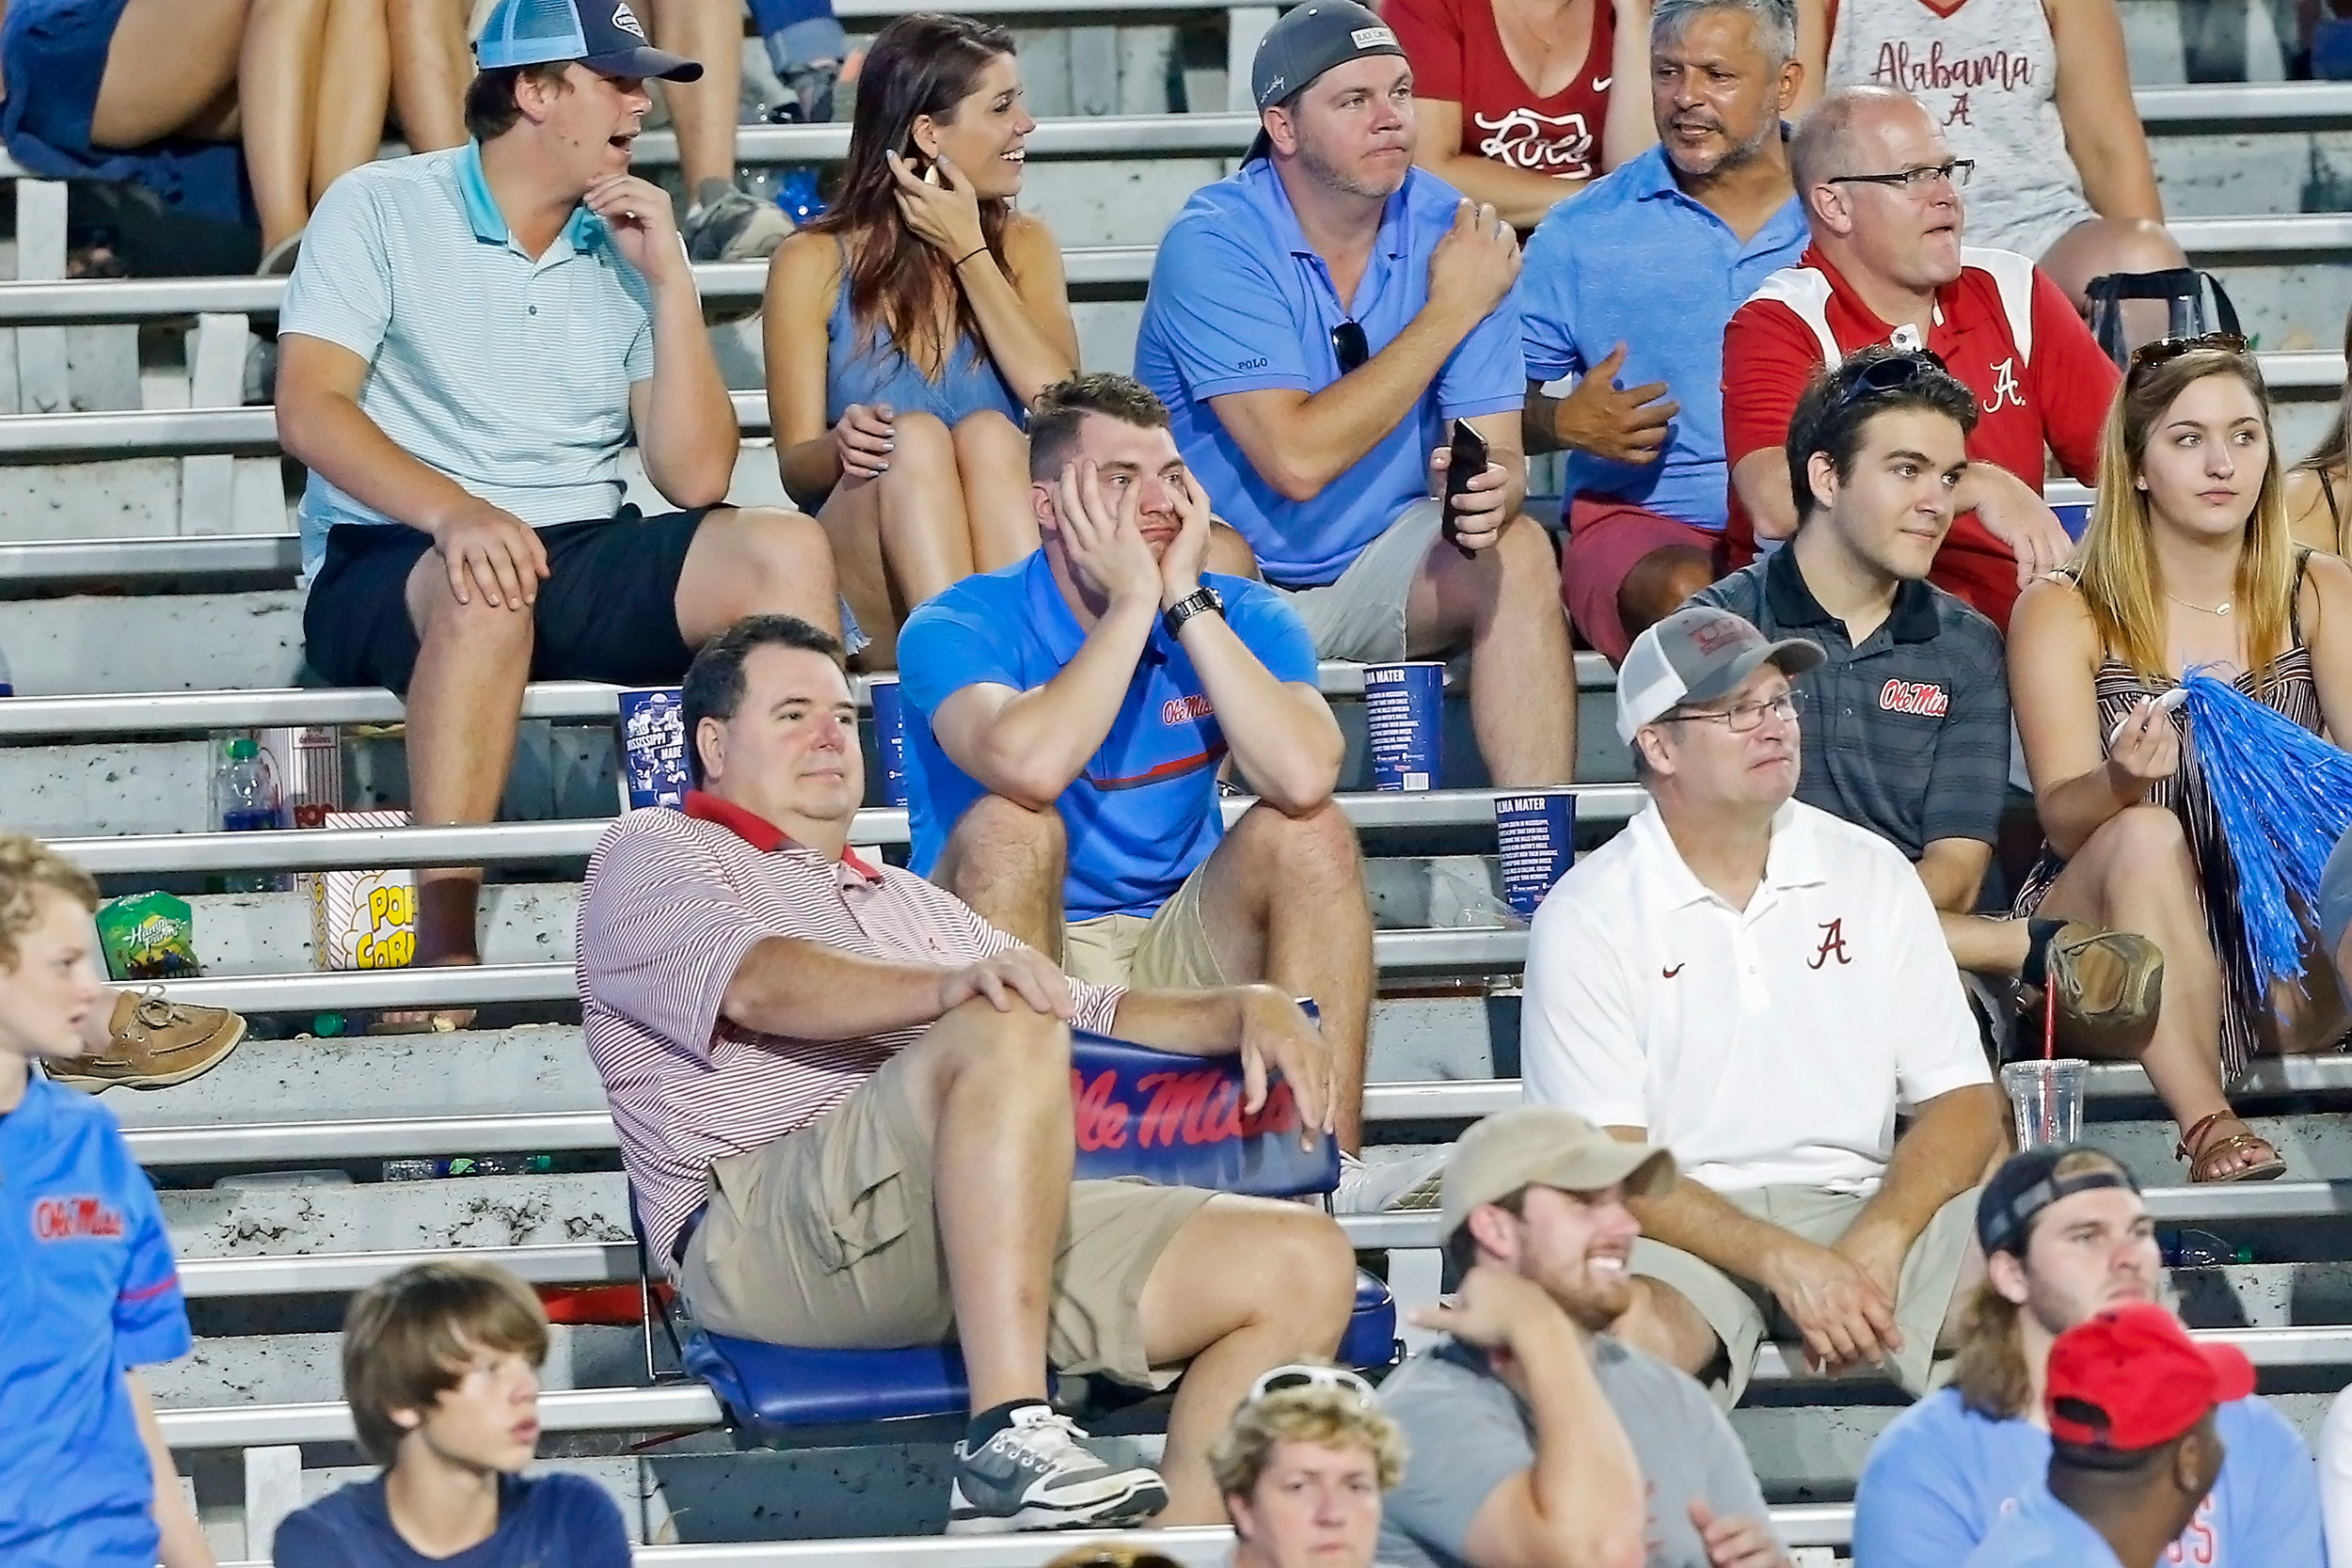 There was little for the Mississippi Rebels fans to cheer for after the first half game between the University of Alabama and Ole Miss at Vaught-Hemingway Stadium. Jason Clark / Daily Mountain Eagle